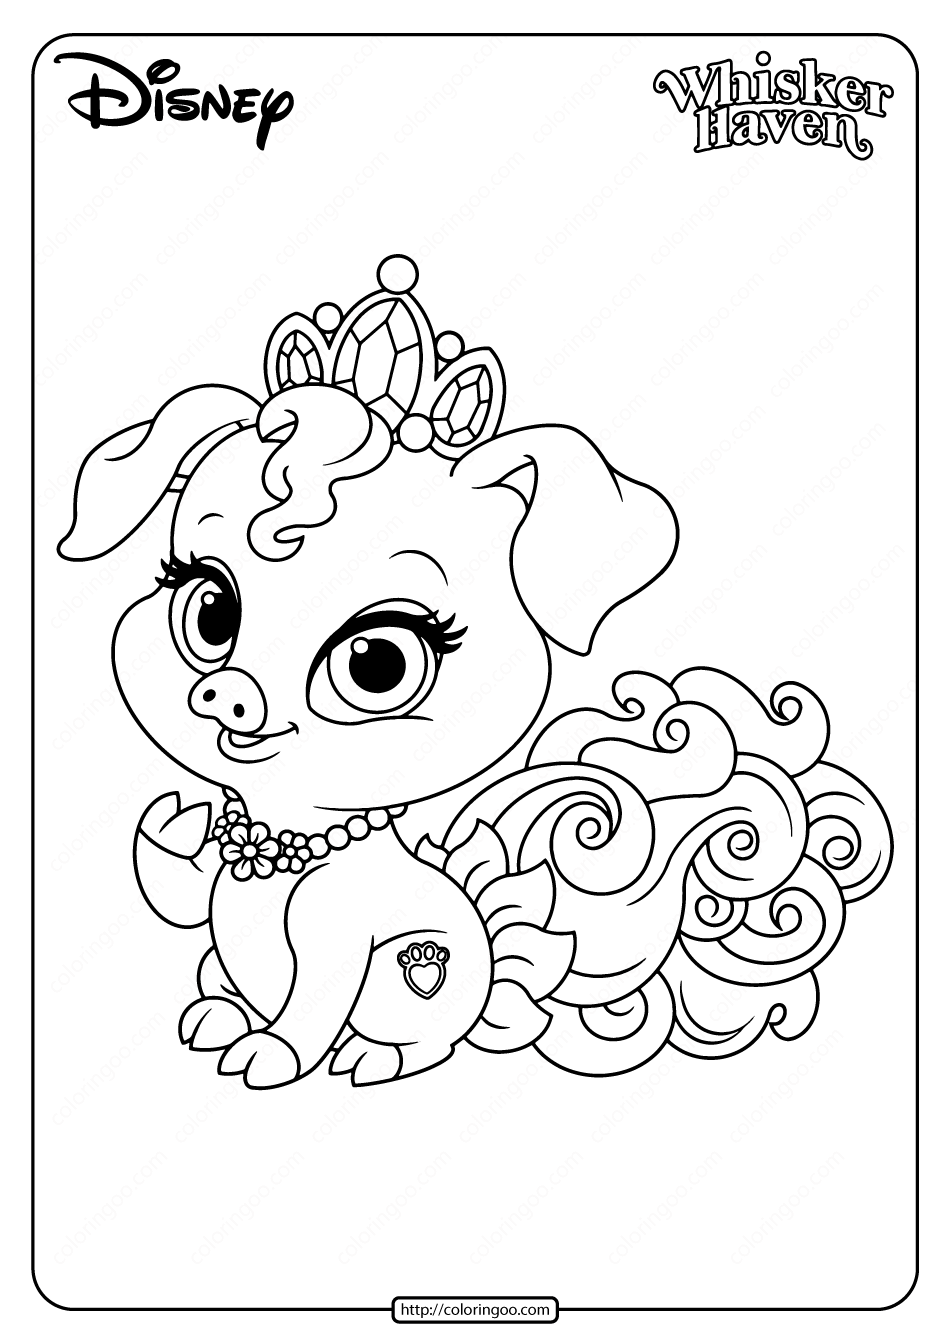 Printable Palace Pets Truffles Pdf Coloring Page In 2020 Puppy Coloring Pages Princess Puppies Disney Princess Palace Pets